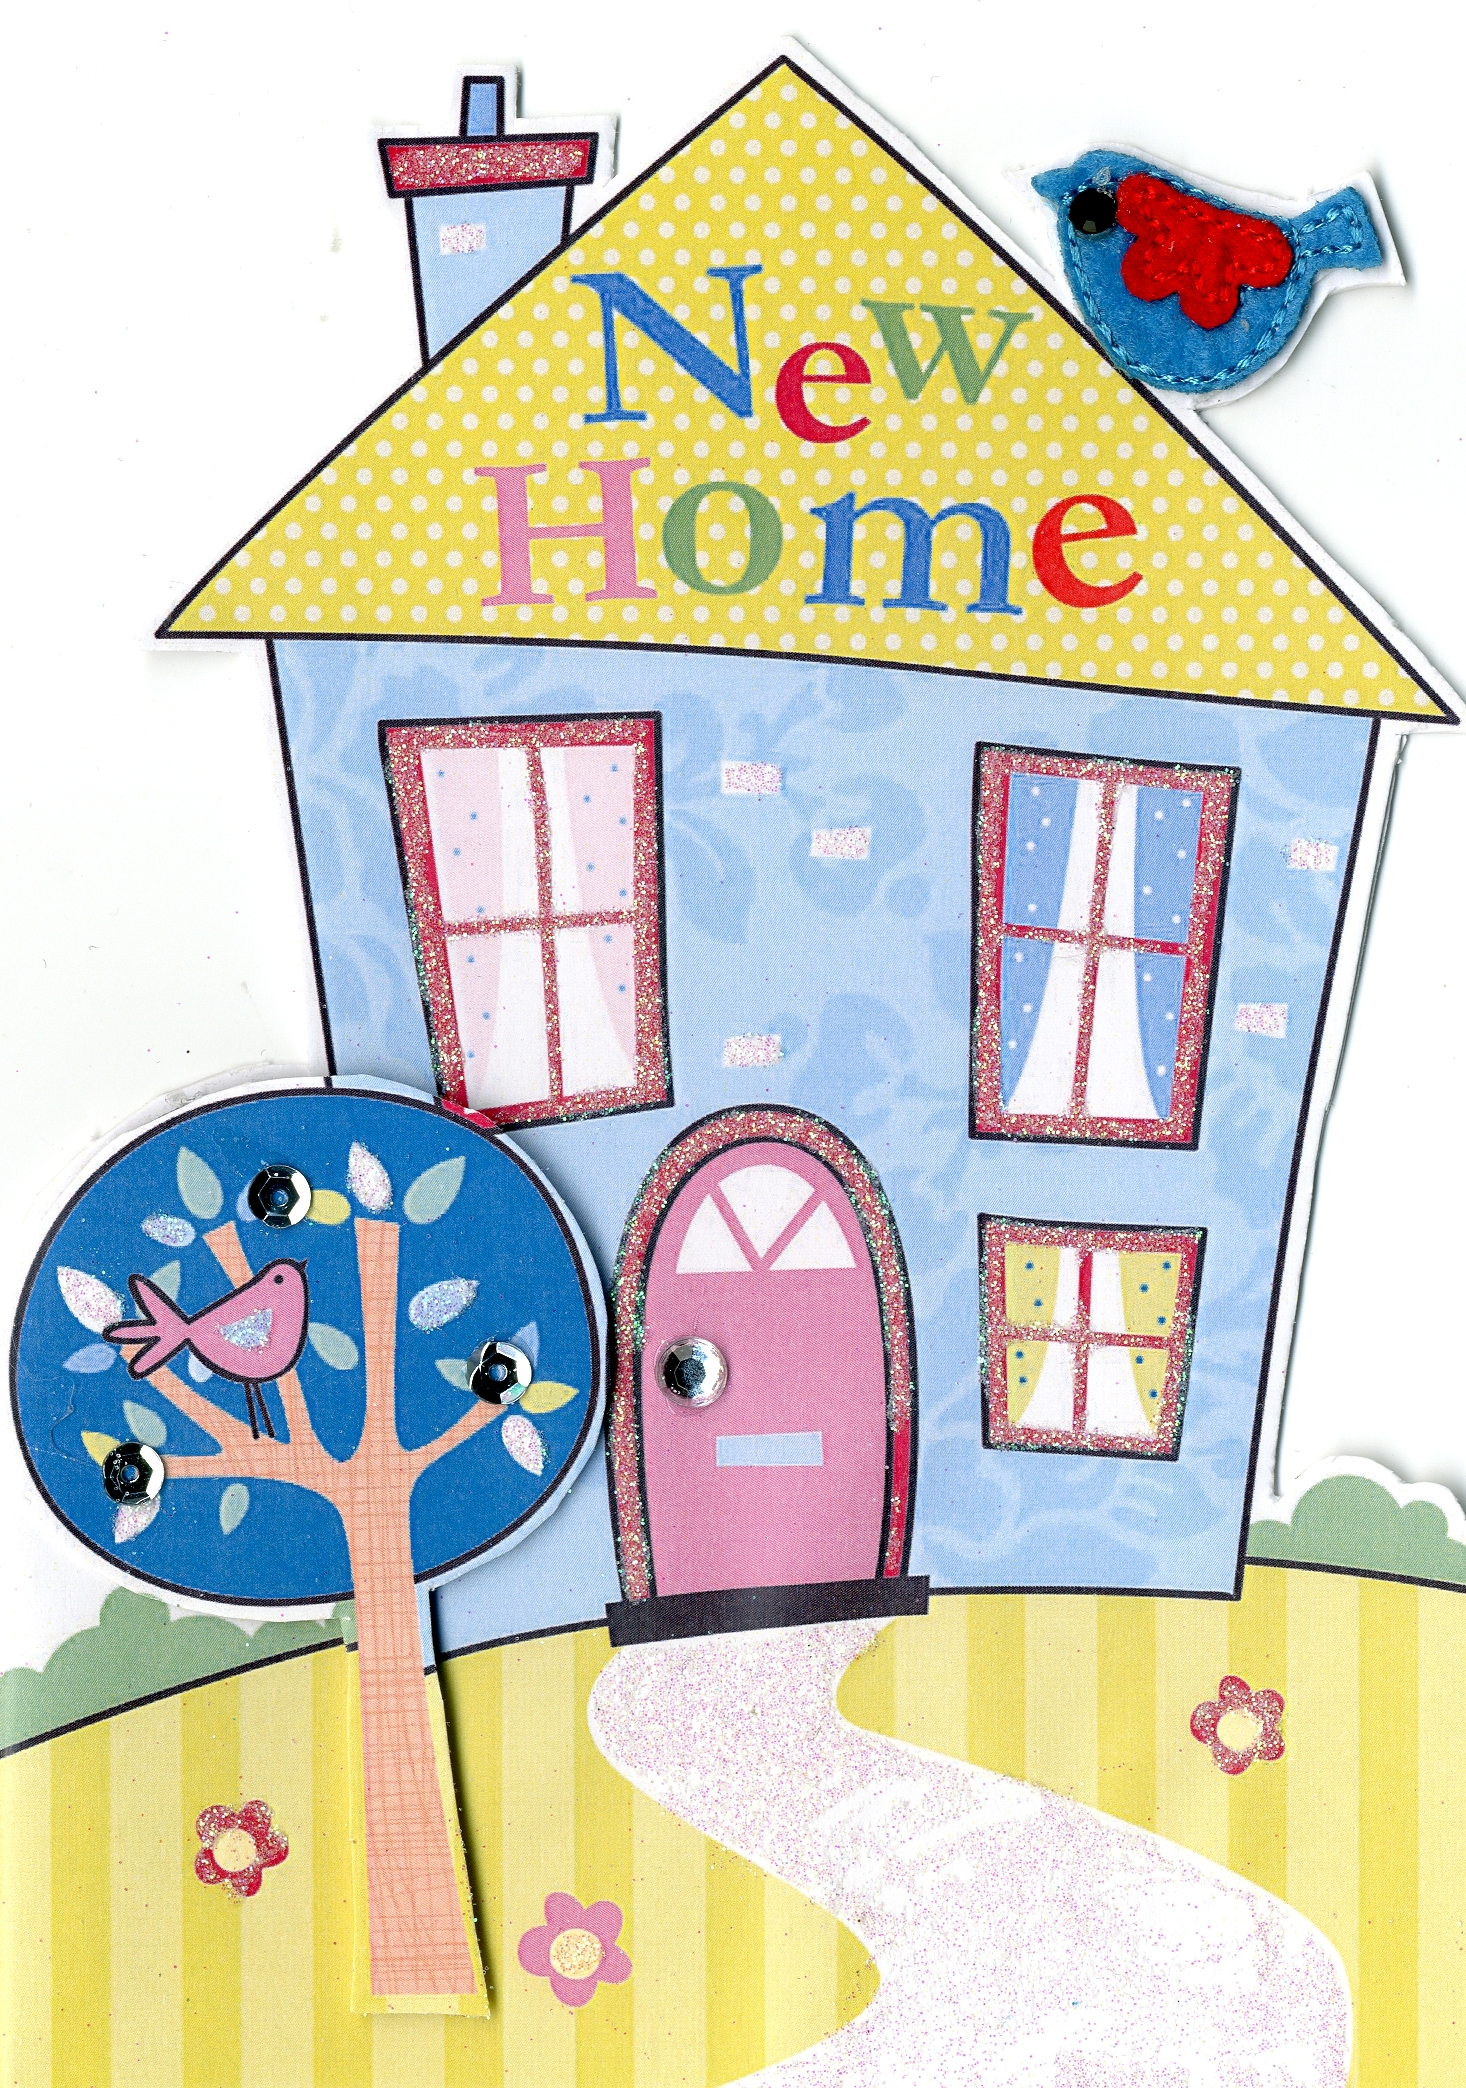 New home greeting card cards love kates new home greeting card kristyandbryce Gallery